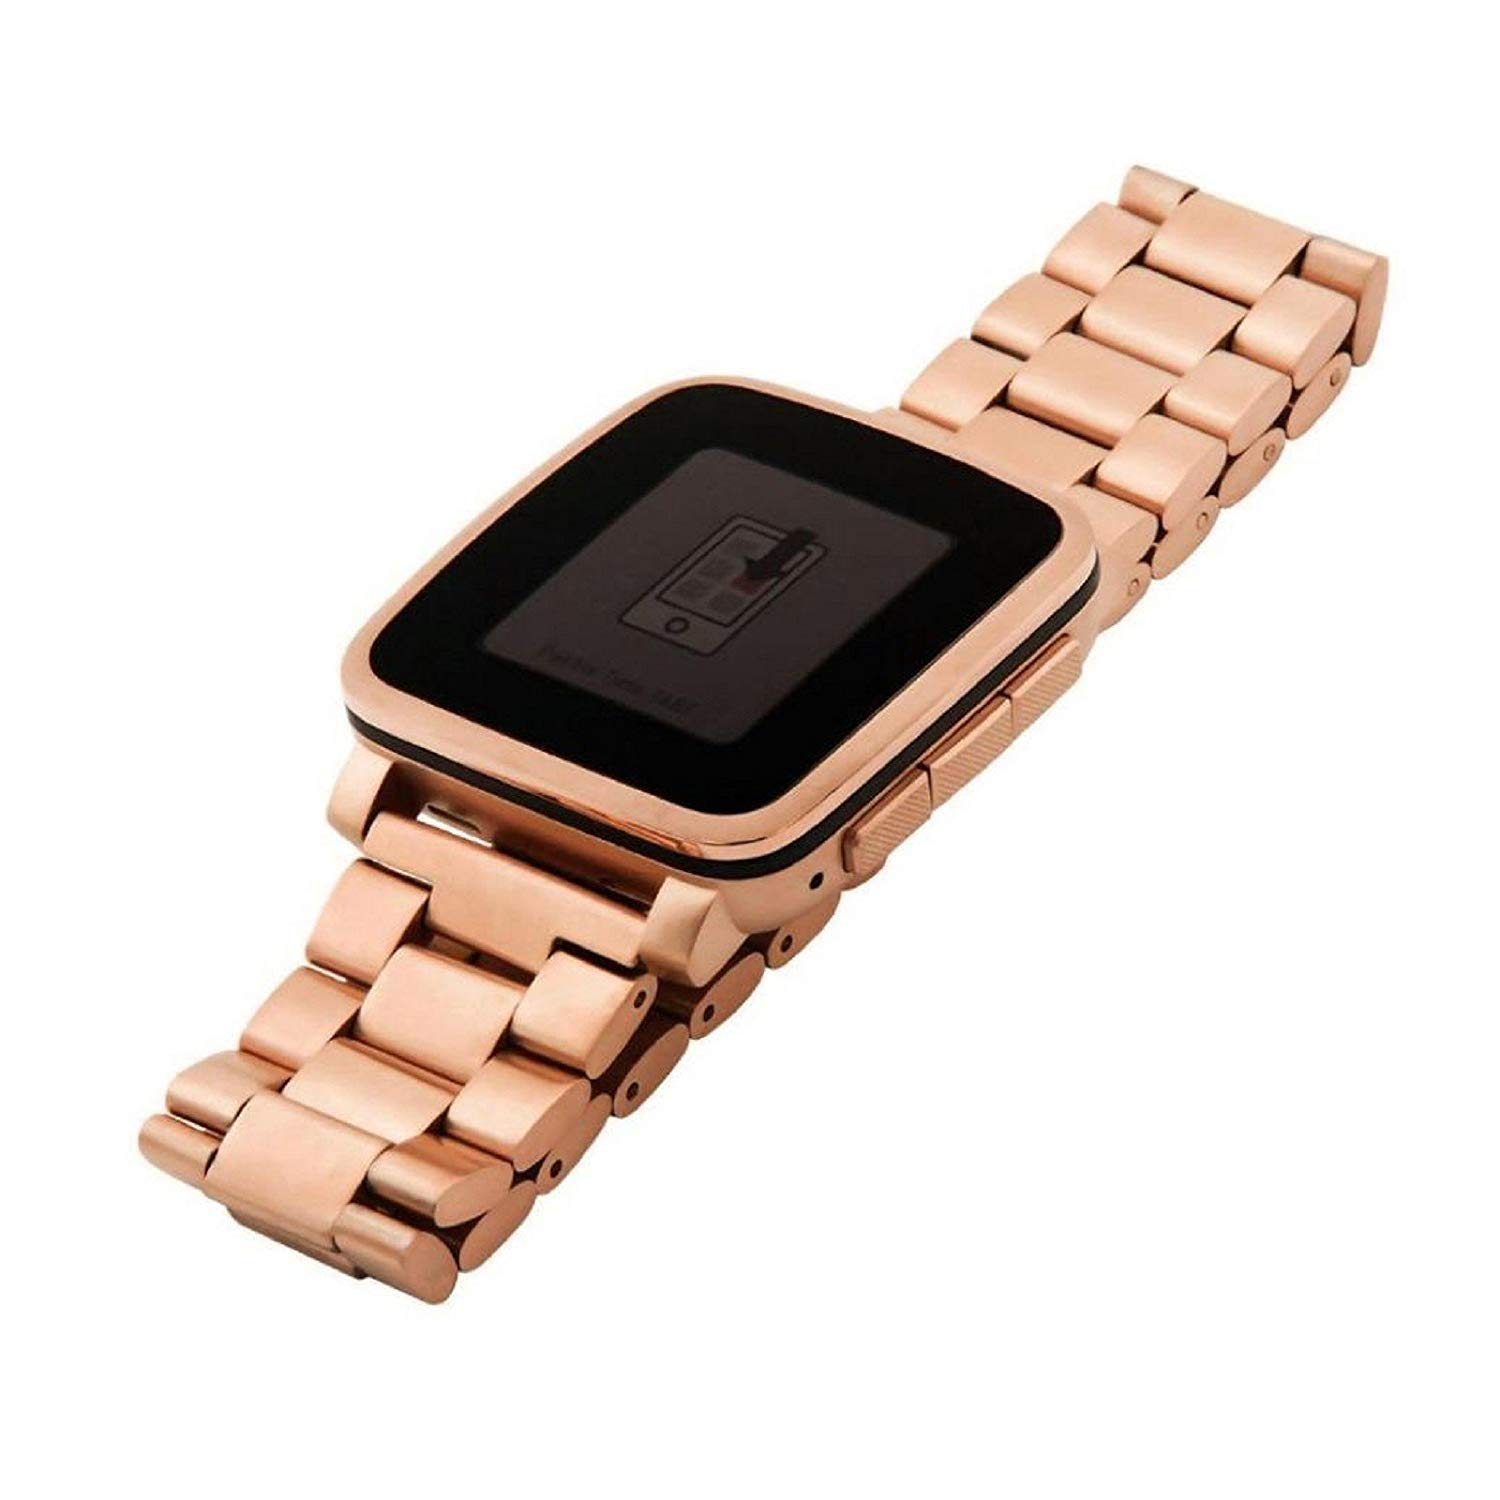 Owill Genuine Stainless Steel Bracelet Watch Band Strap For Pebble Time Smart Watch, Length: About 175MM (Rose Gold)